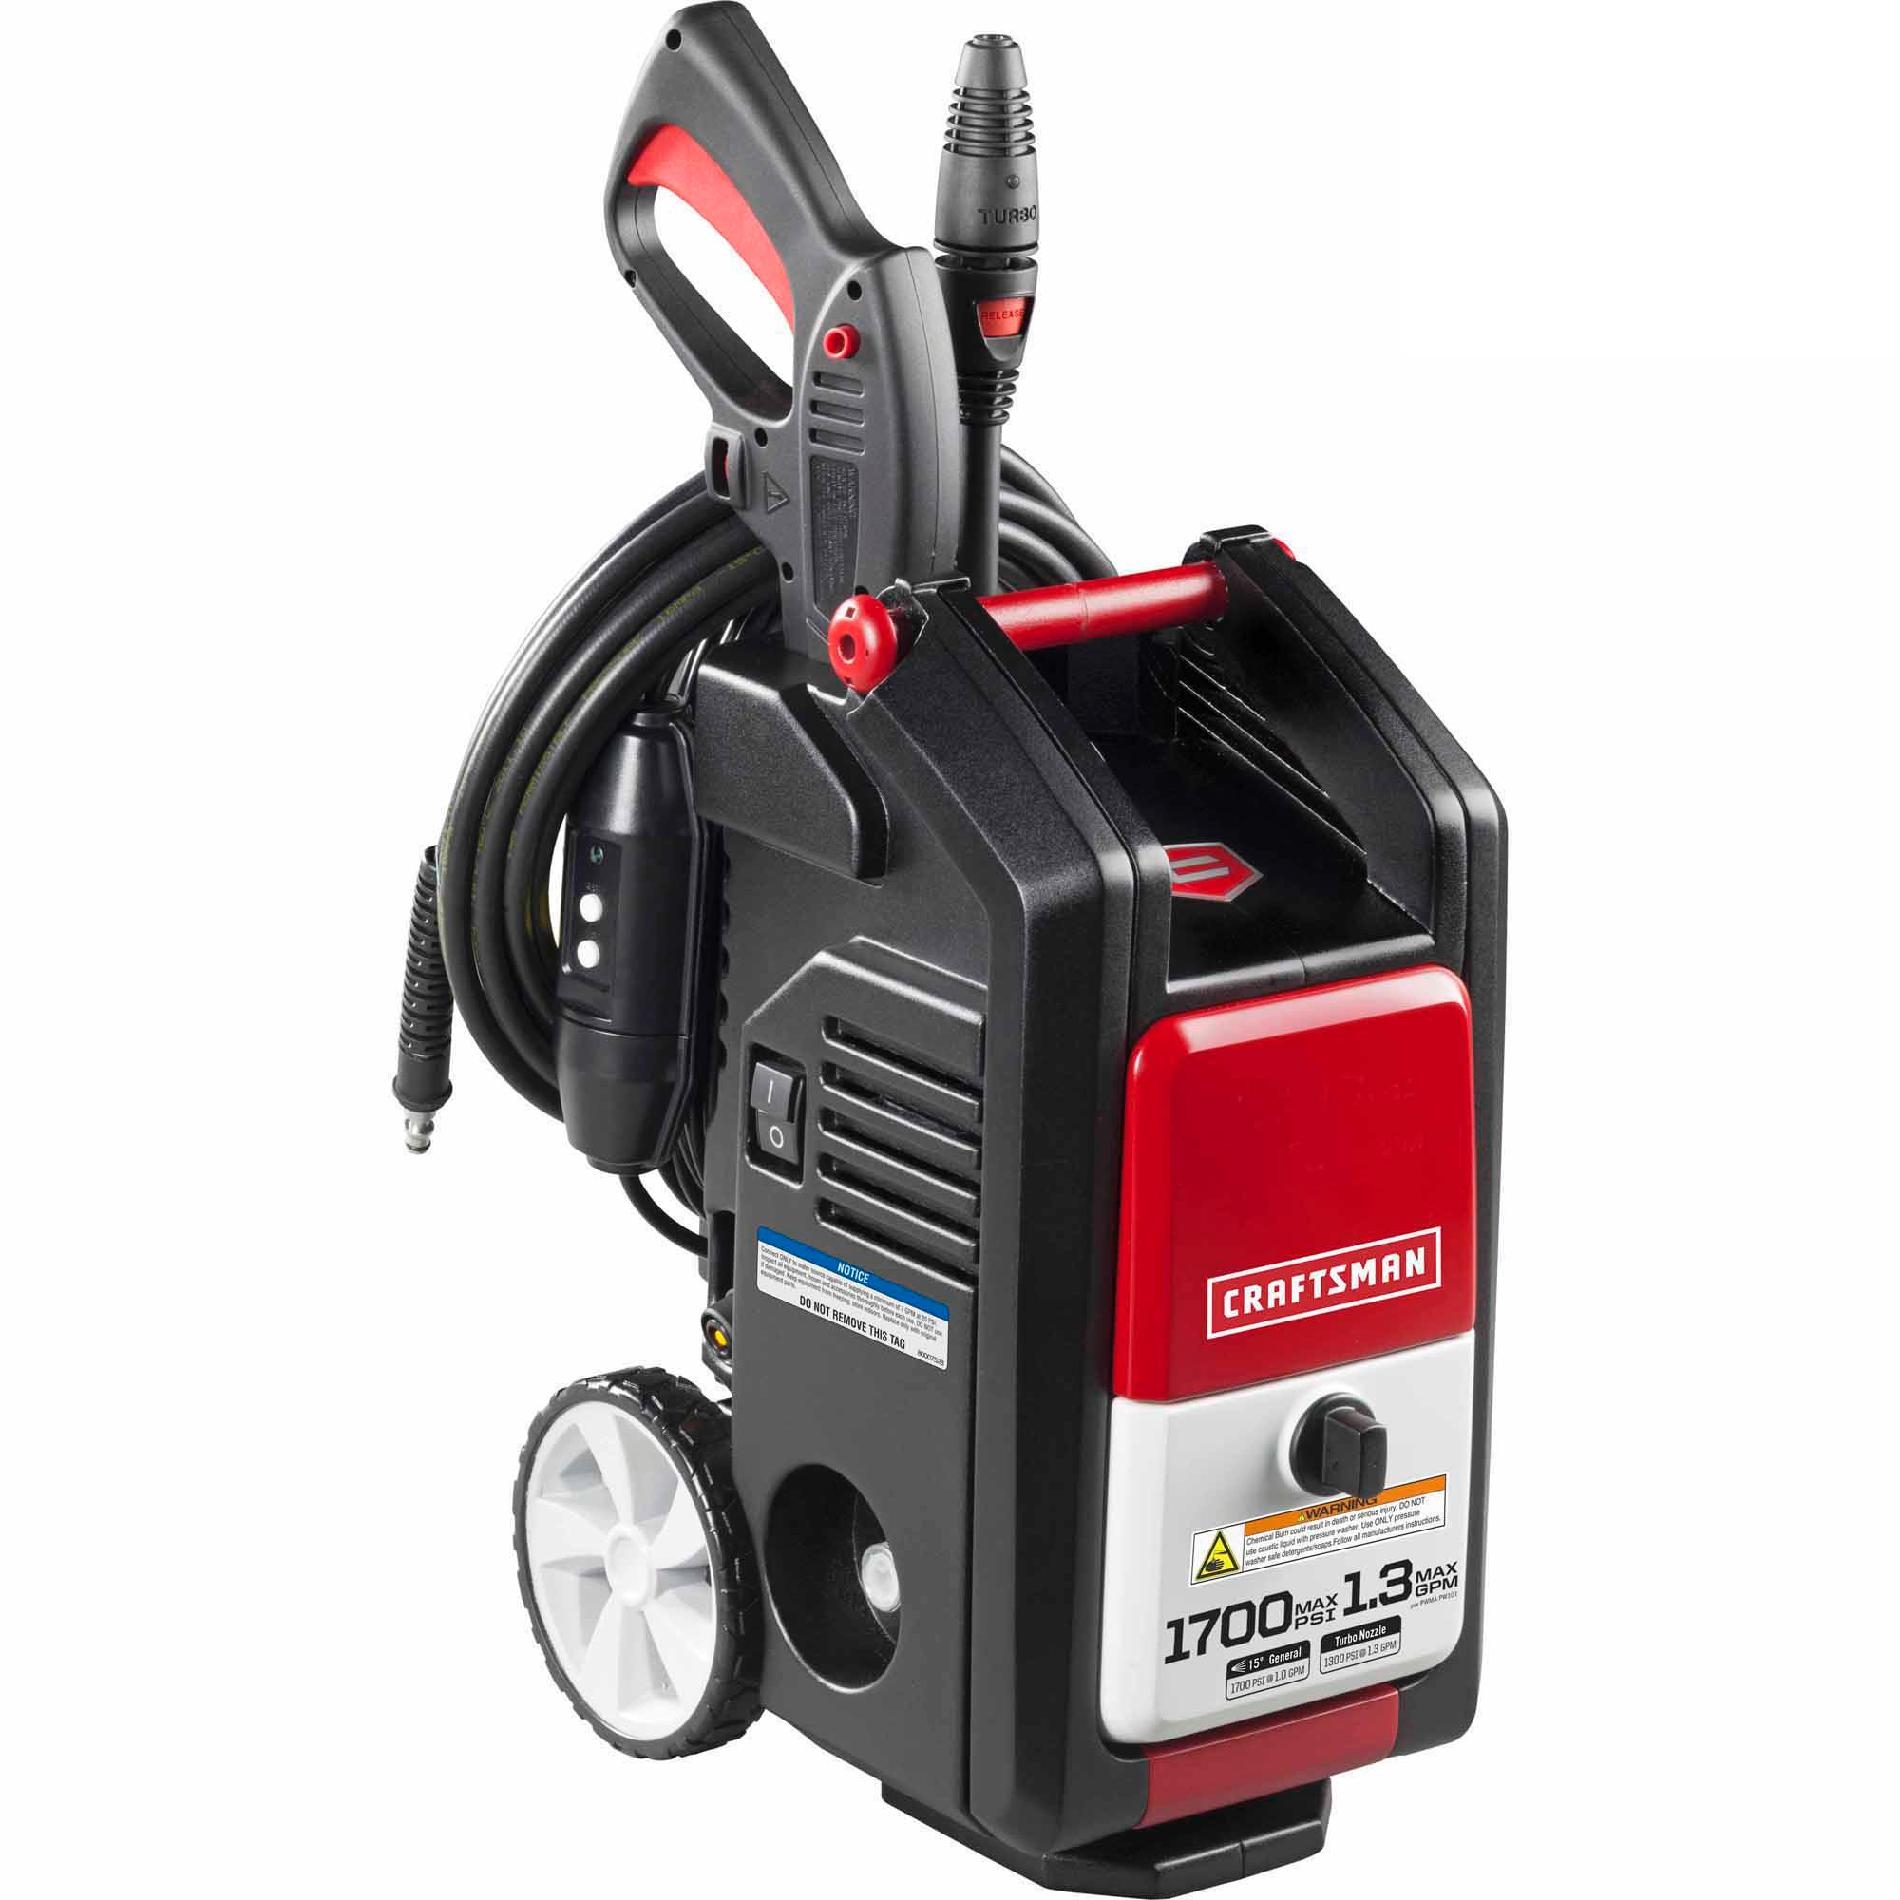 1700psi-1-3GPM-Electric-Pressure-Washer-Non-CA-